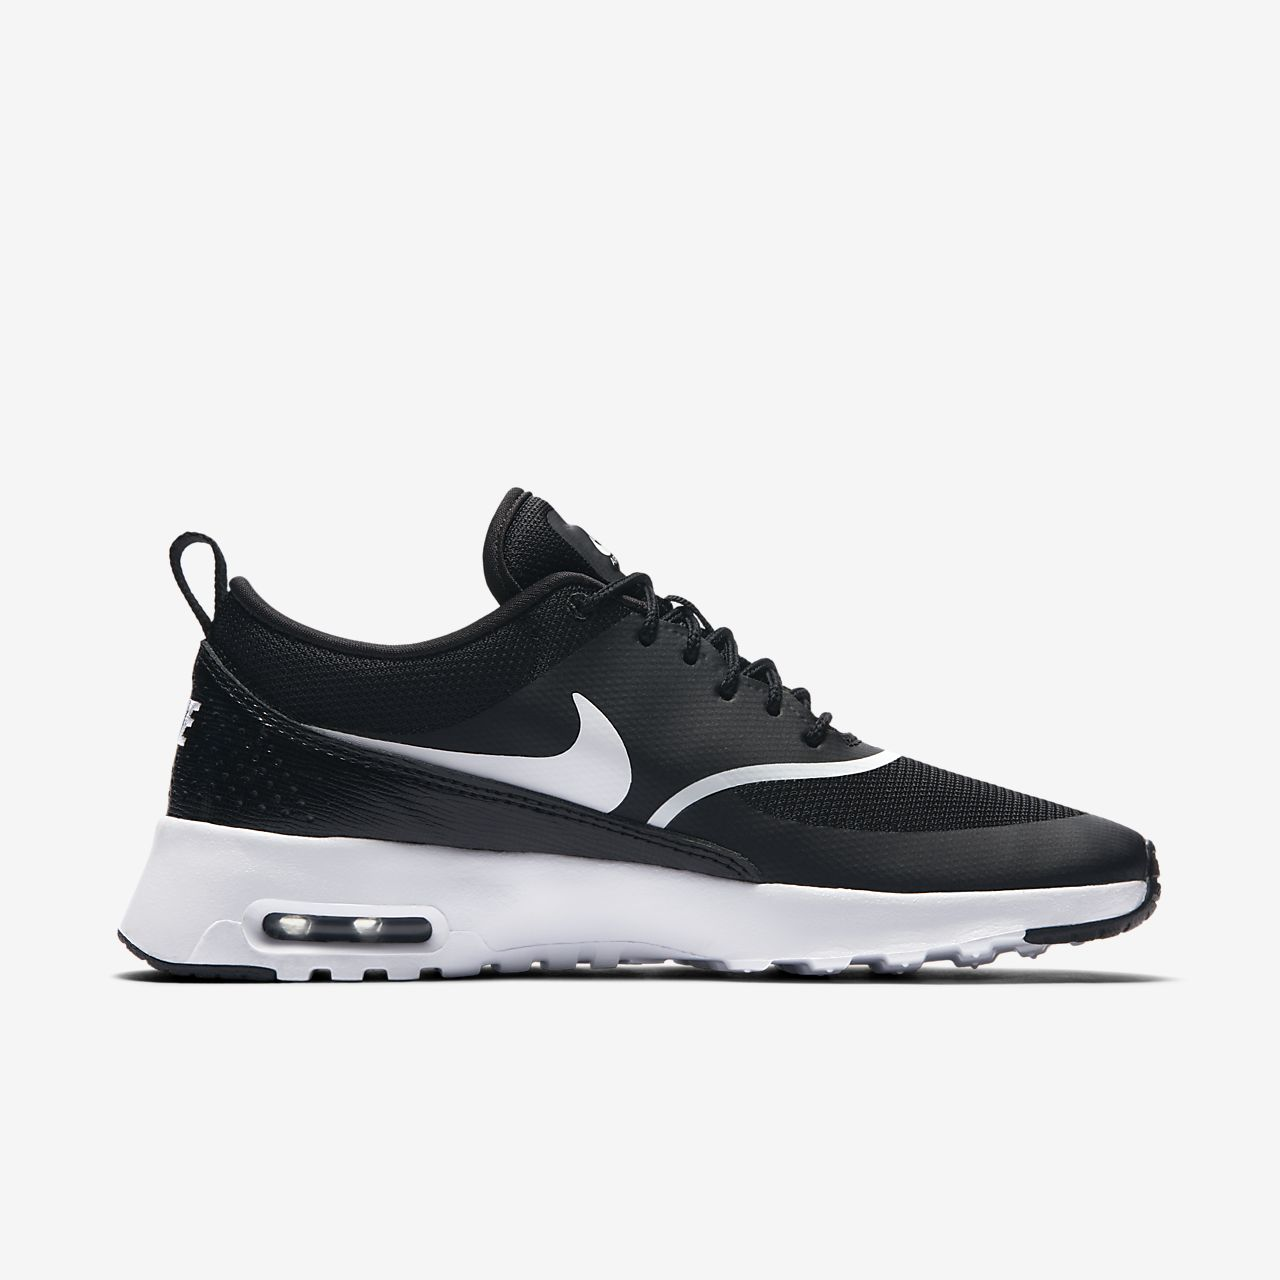 new products 1d2c6 42740 Women s Shoe. Nike Air Max Thea